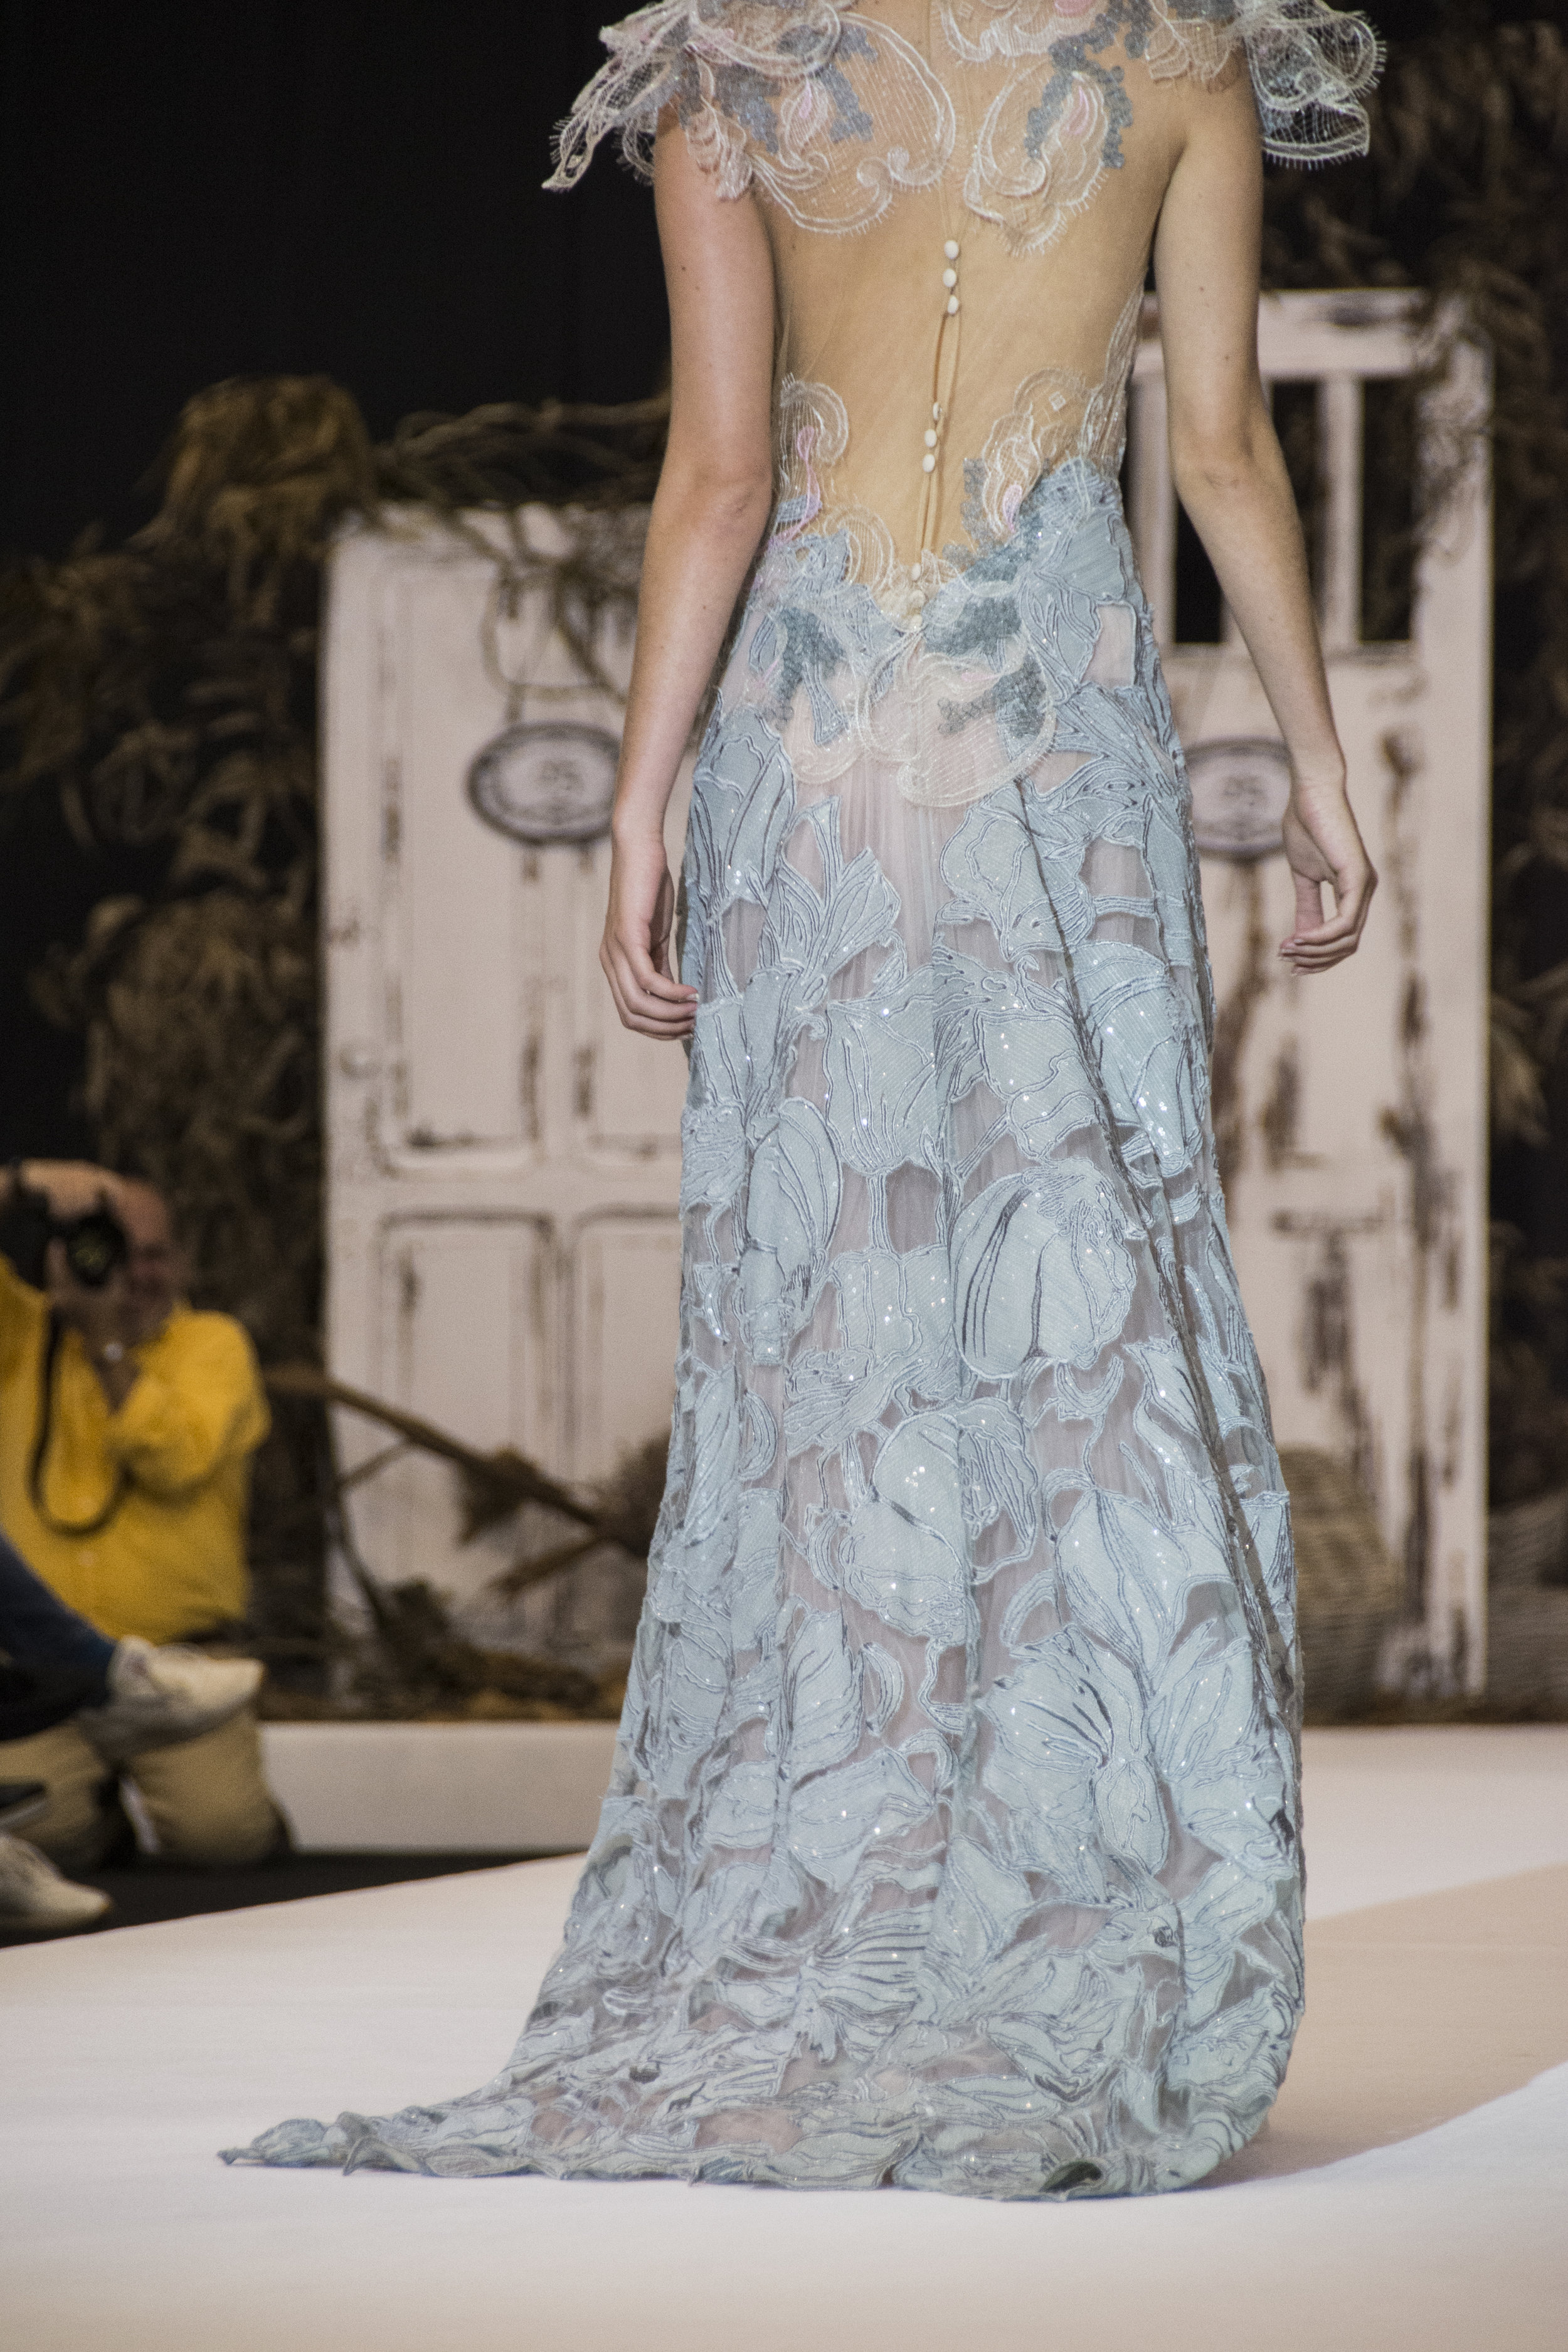 The collection has incorporated a tattoo technique with a very light lace creating an ethereal effect.